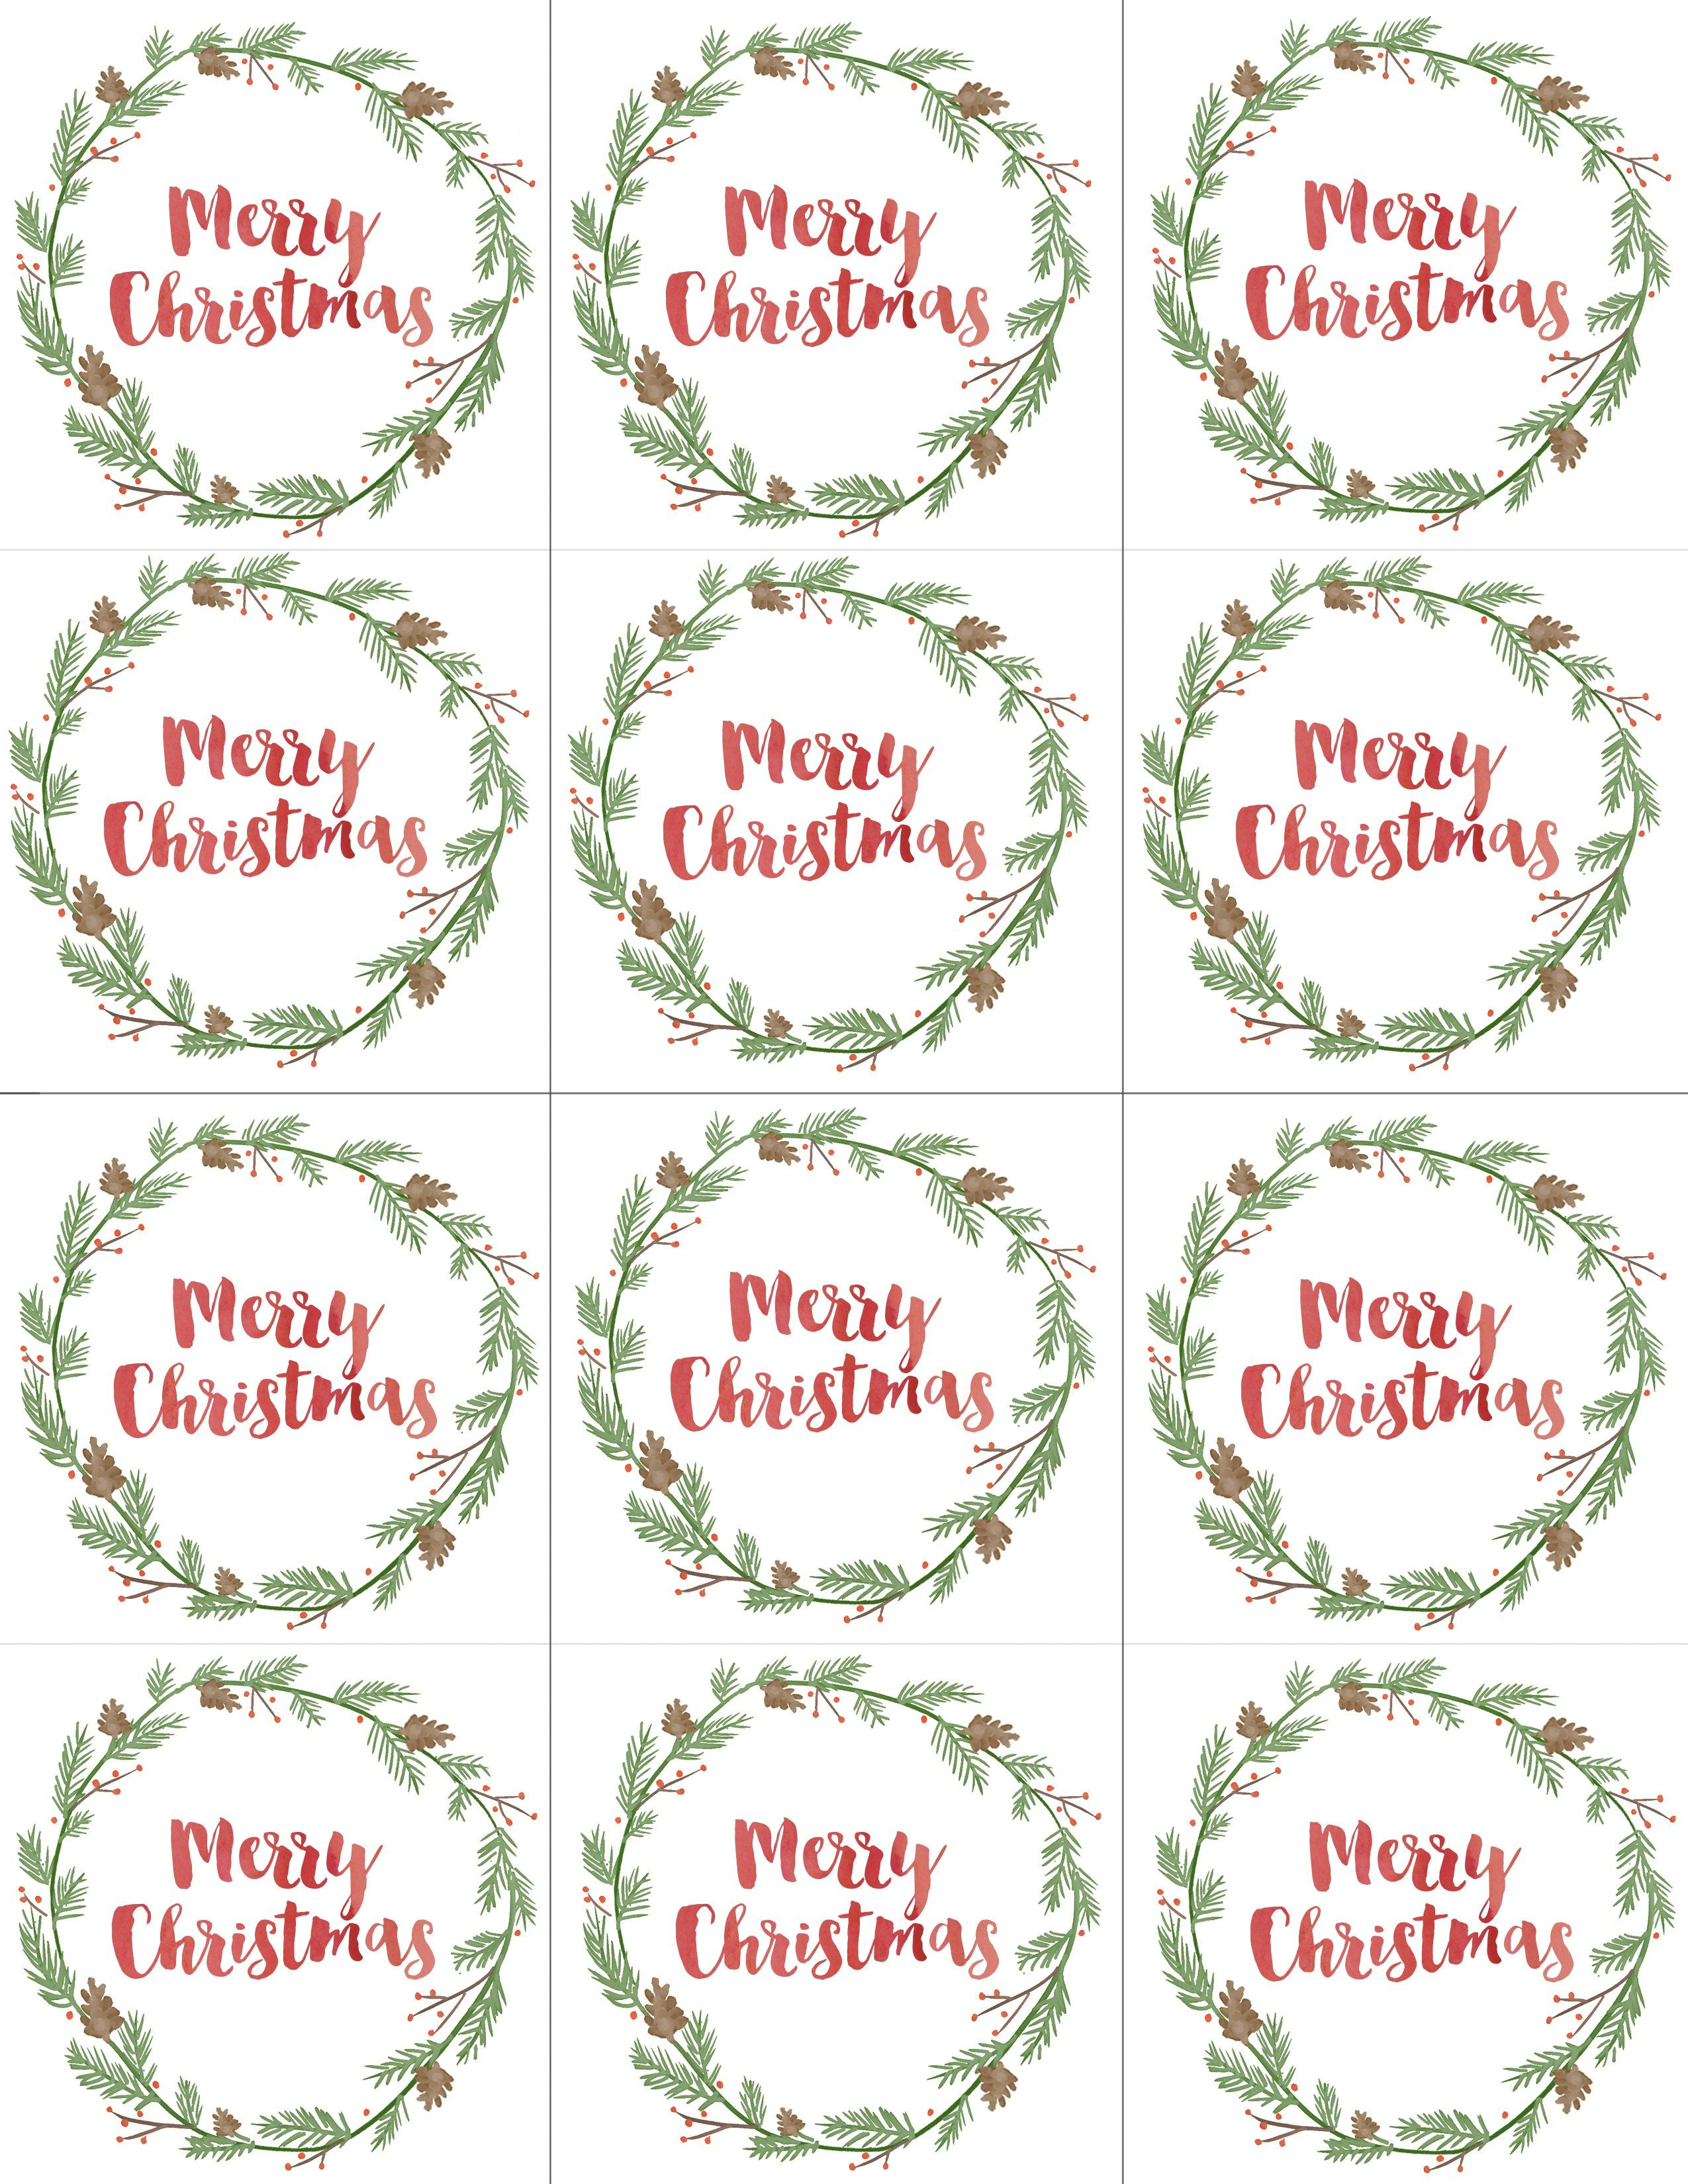 Hand Painted Gift Tags Free Printable | Christmas | Christmas Gift - Diy Christmas Gift Tags Free Printable